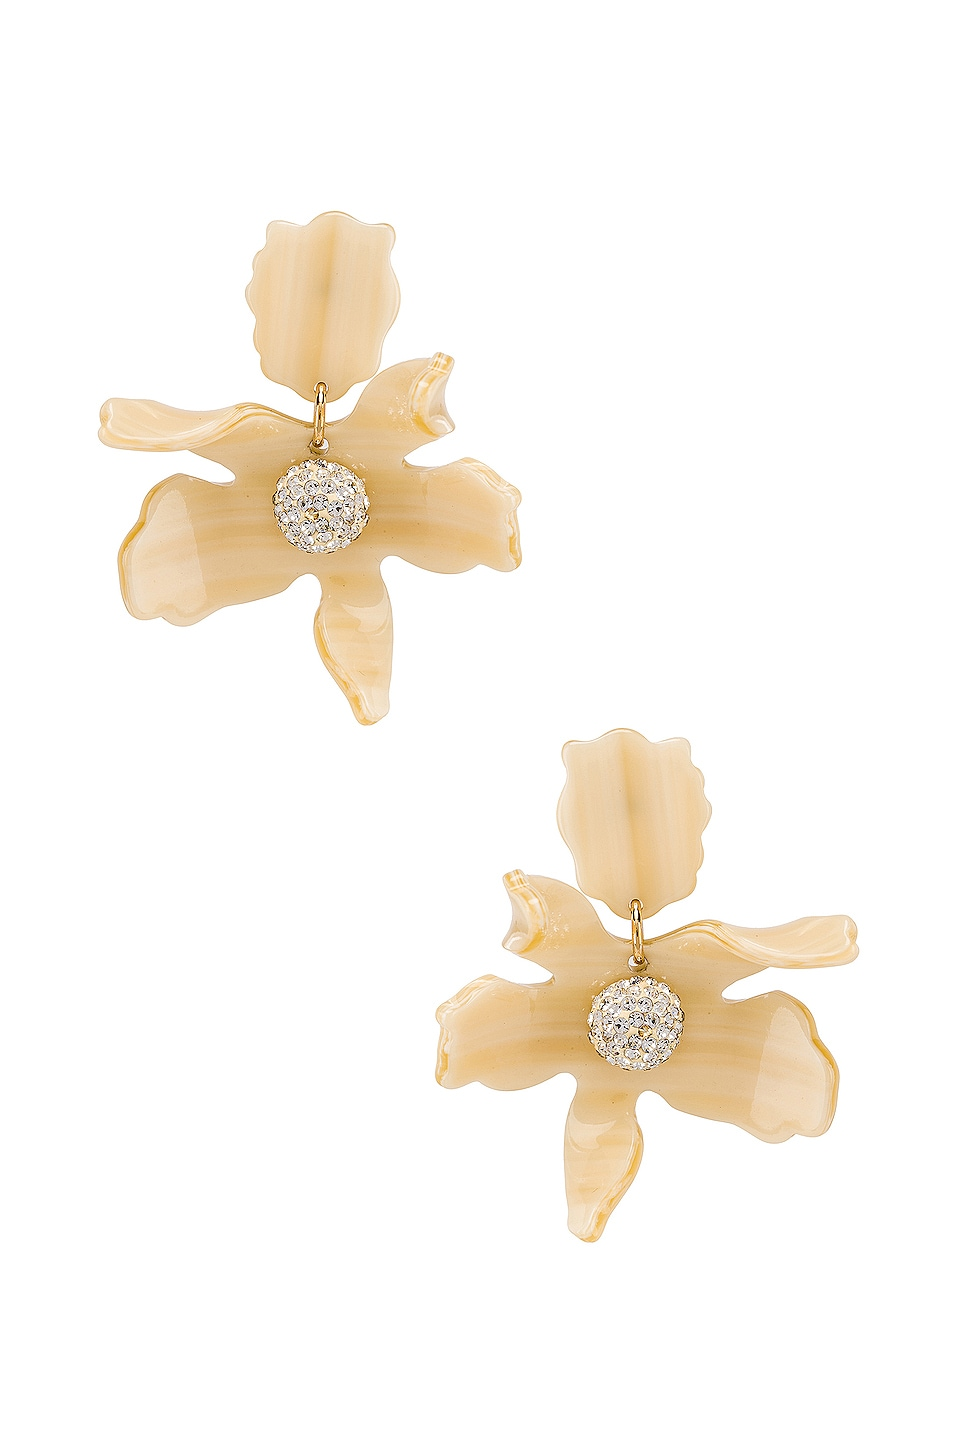 Lele Sadoughi Small Crystal Lily Earring in Bone